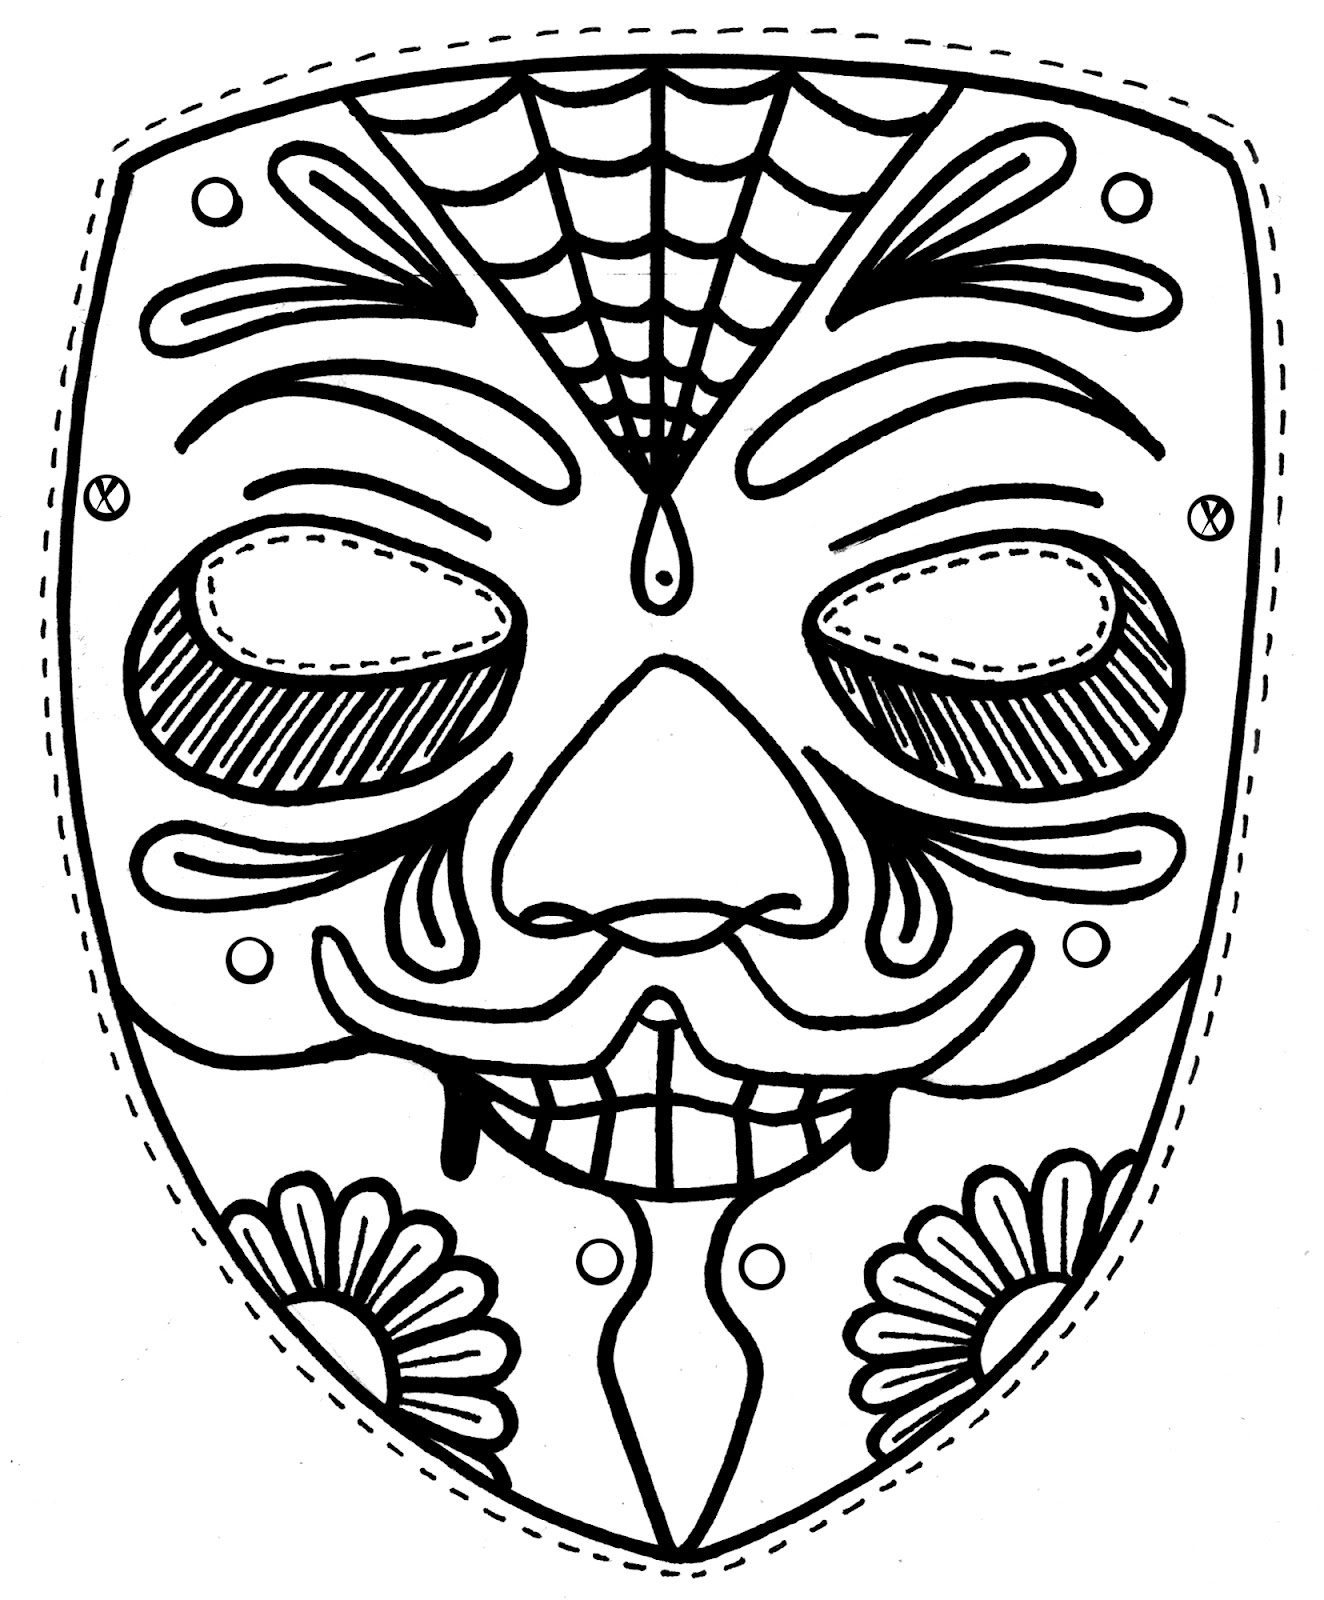 mask coloring pages mask coloring pages coloring pages to download and print pages mask coloring